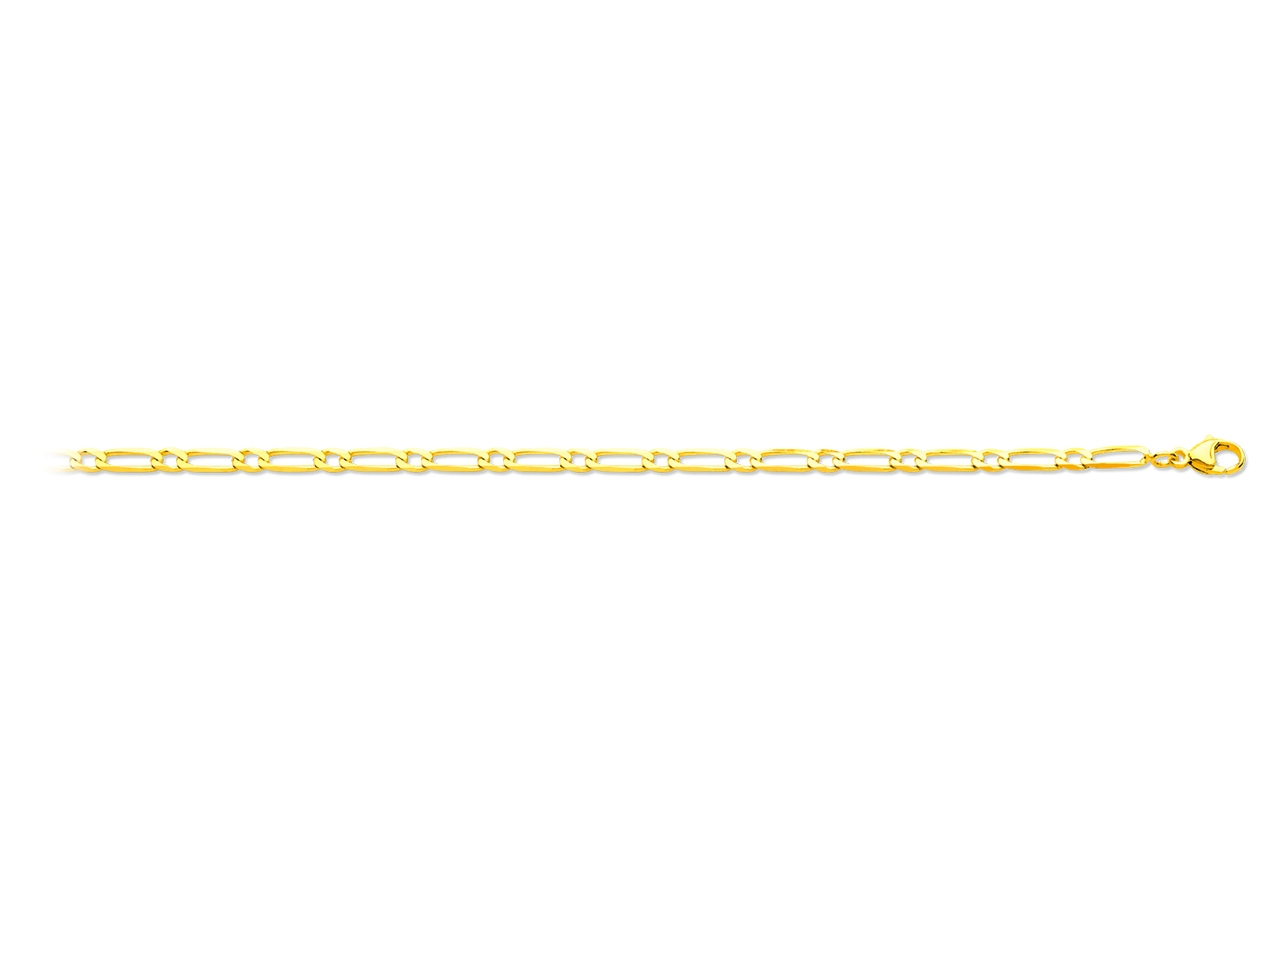 Collier maille alternée 1/1 ultra plate, Or jaune 18k, 3 mm, 55 cm